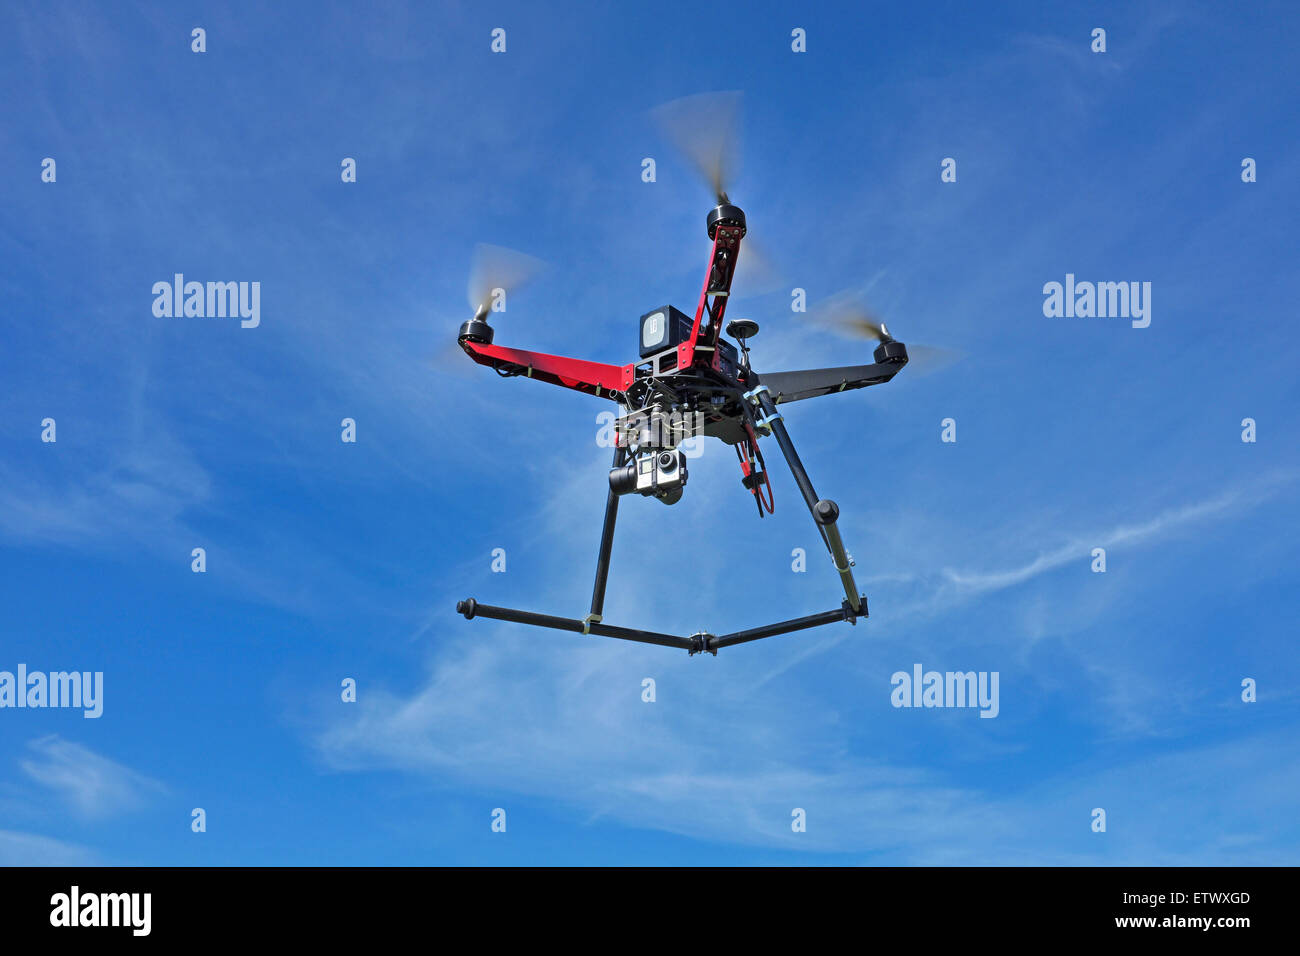 A quadcopter drone, equipped with a gopro camera, in flight. - Stock Image